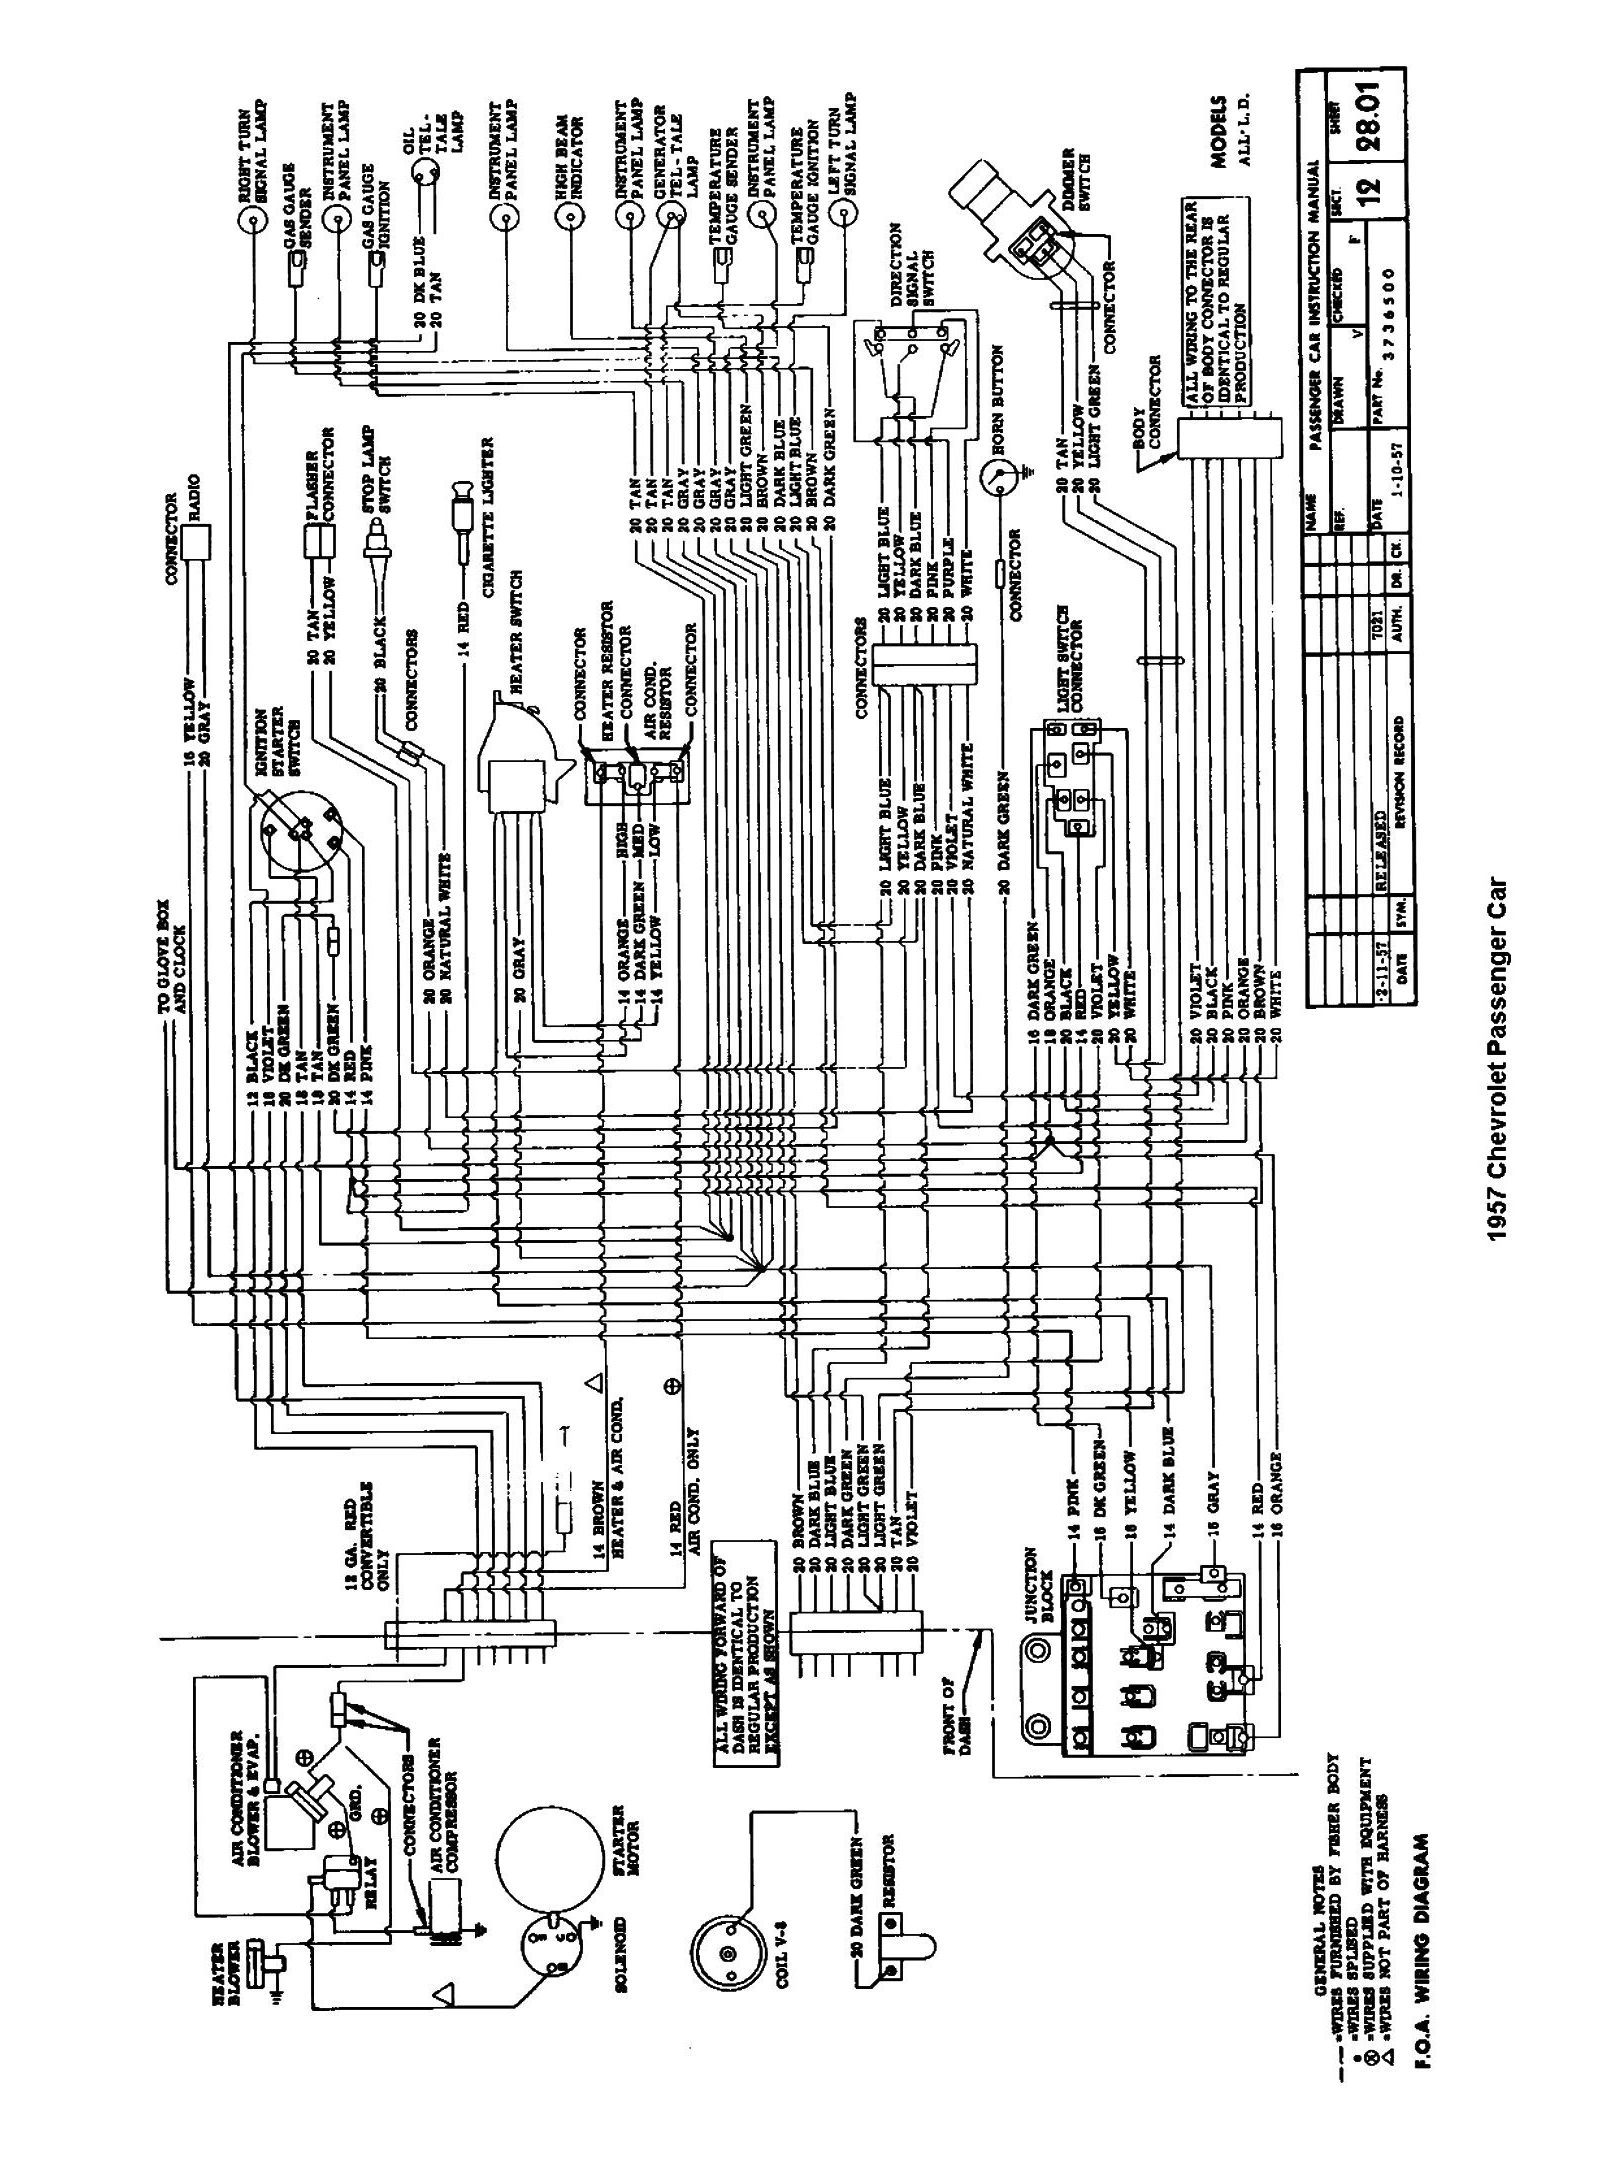 57car2 chevy wiring diagrams 1957 chevy headlight switch wiring diagram at soozxer.org